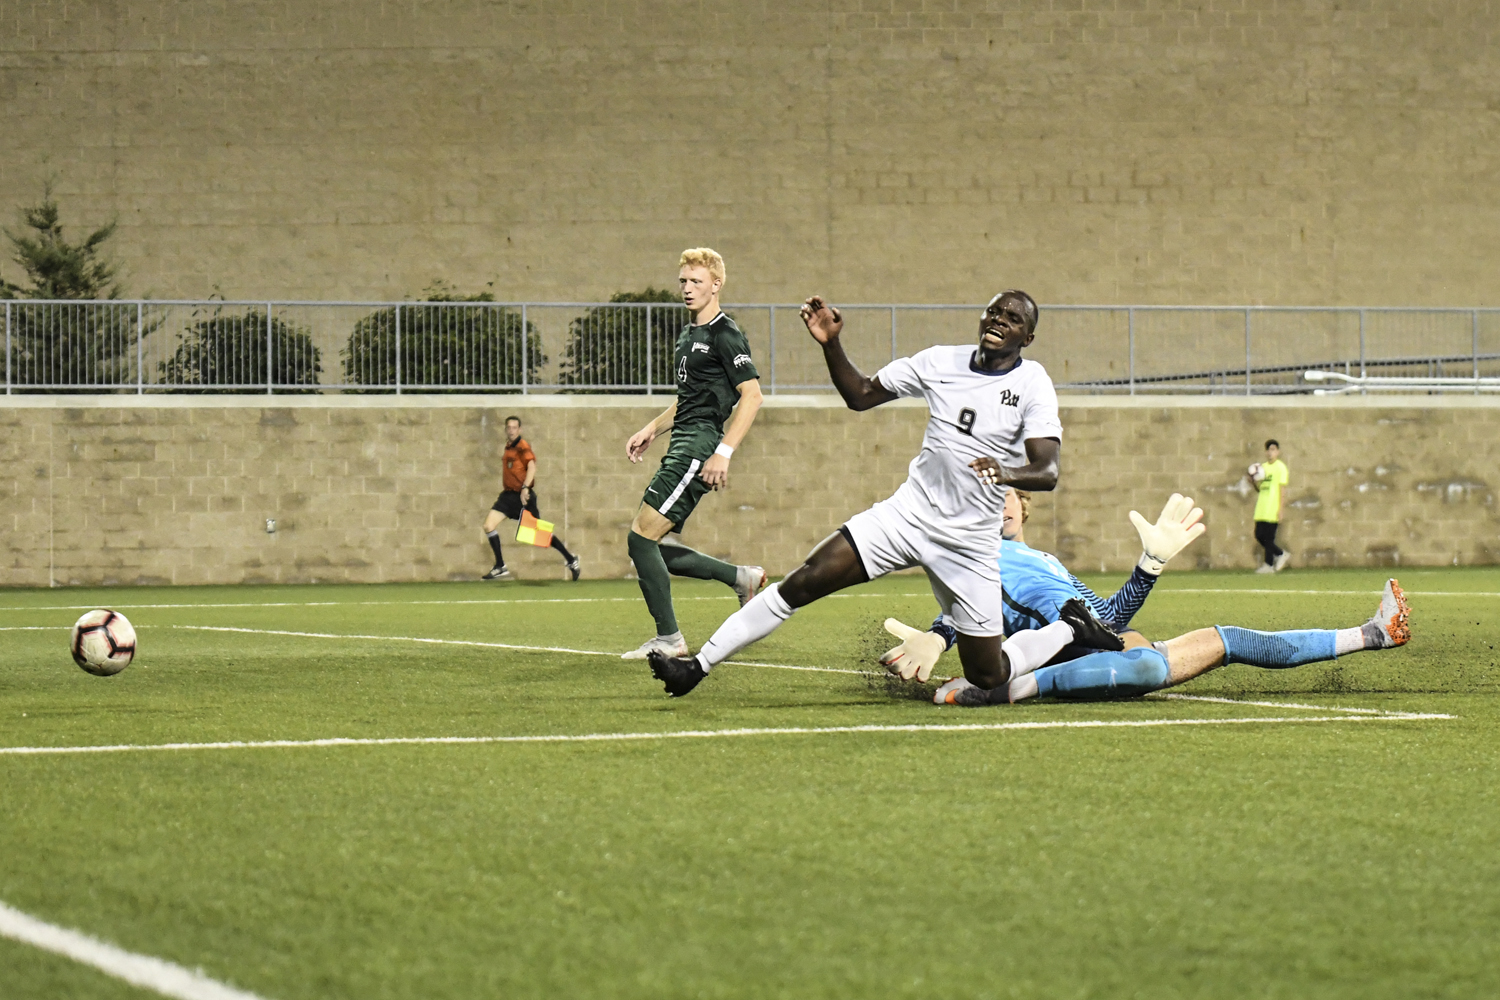 Sophomore forward Edward Kizza takes a shot on goal during Pitt's 3-4 loss to Cleveland State Monday night.